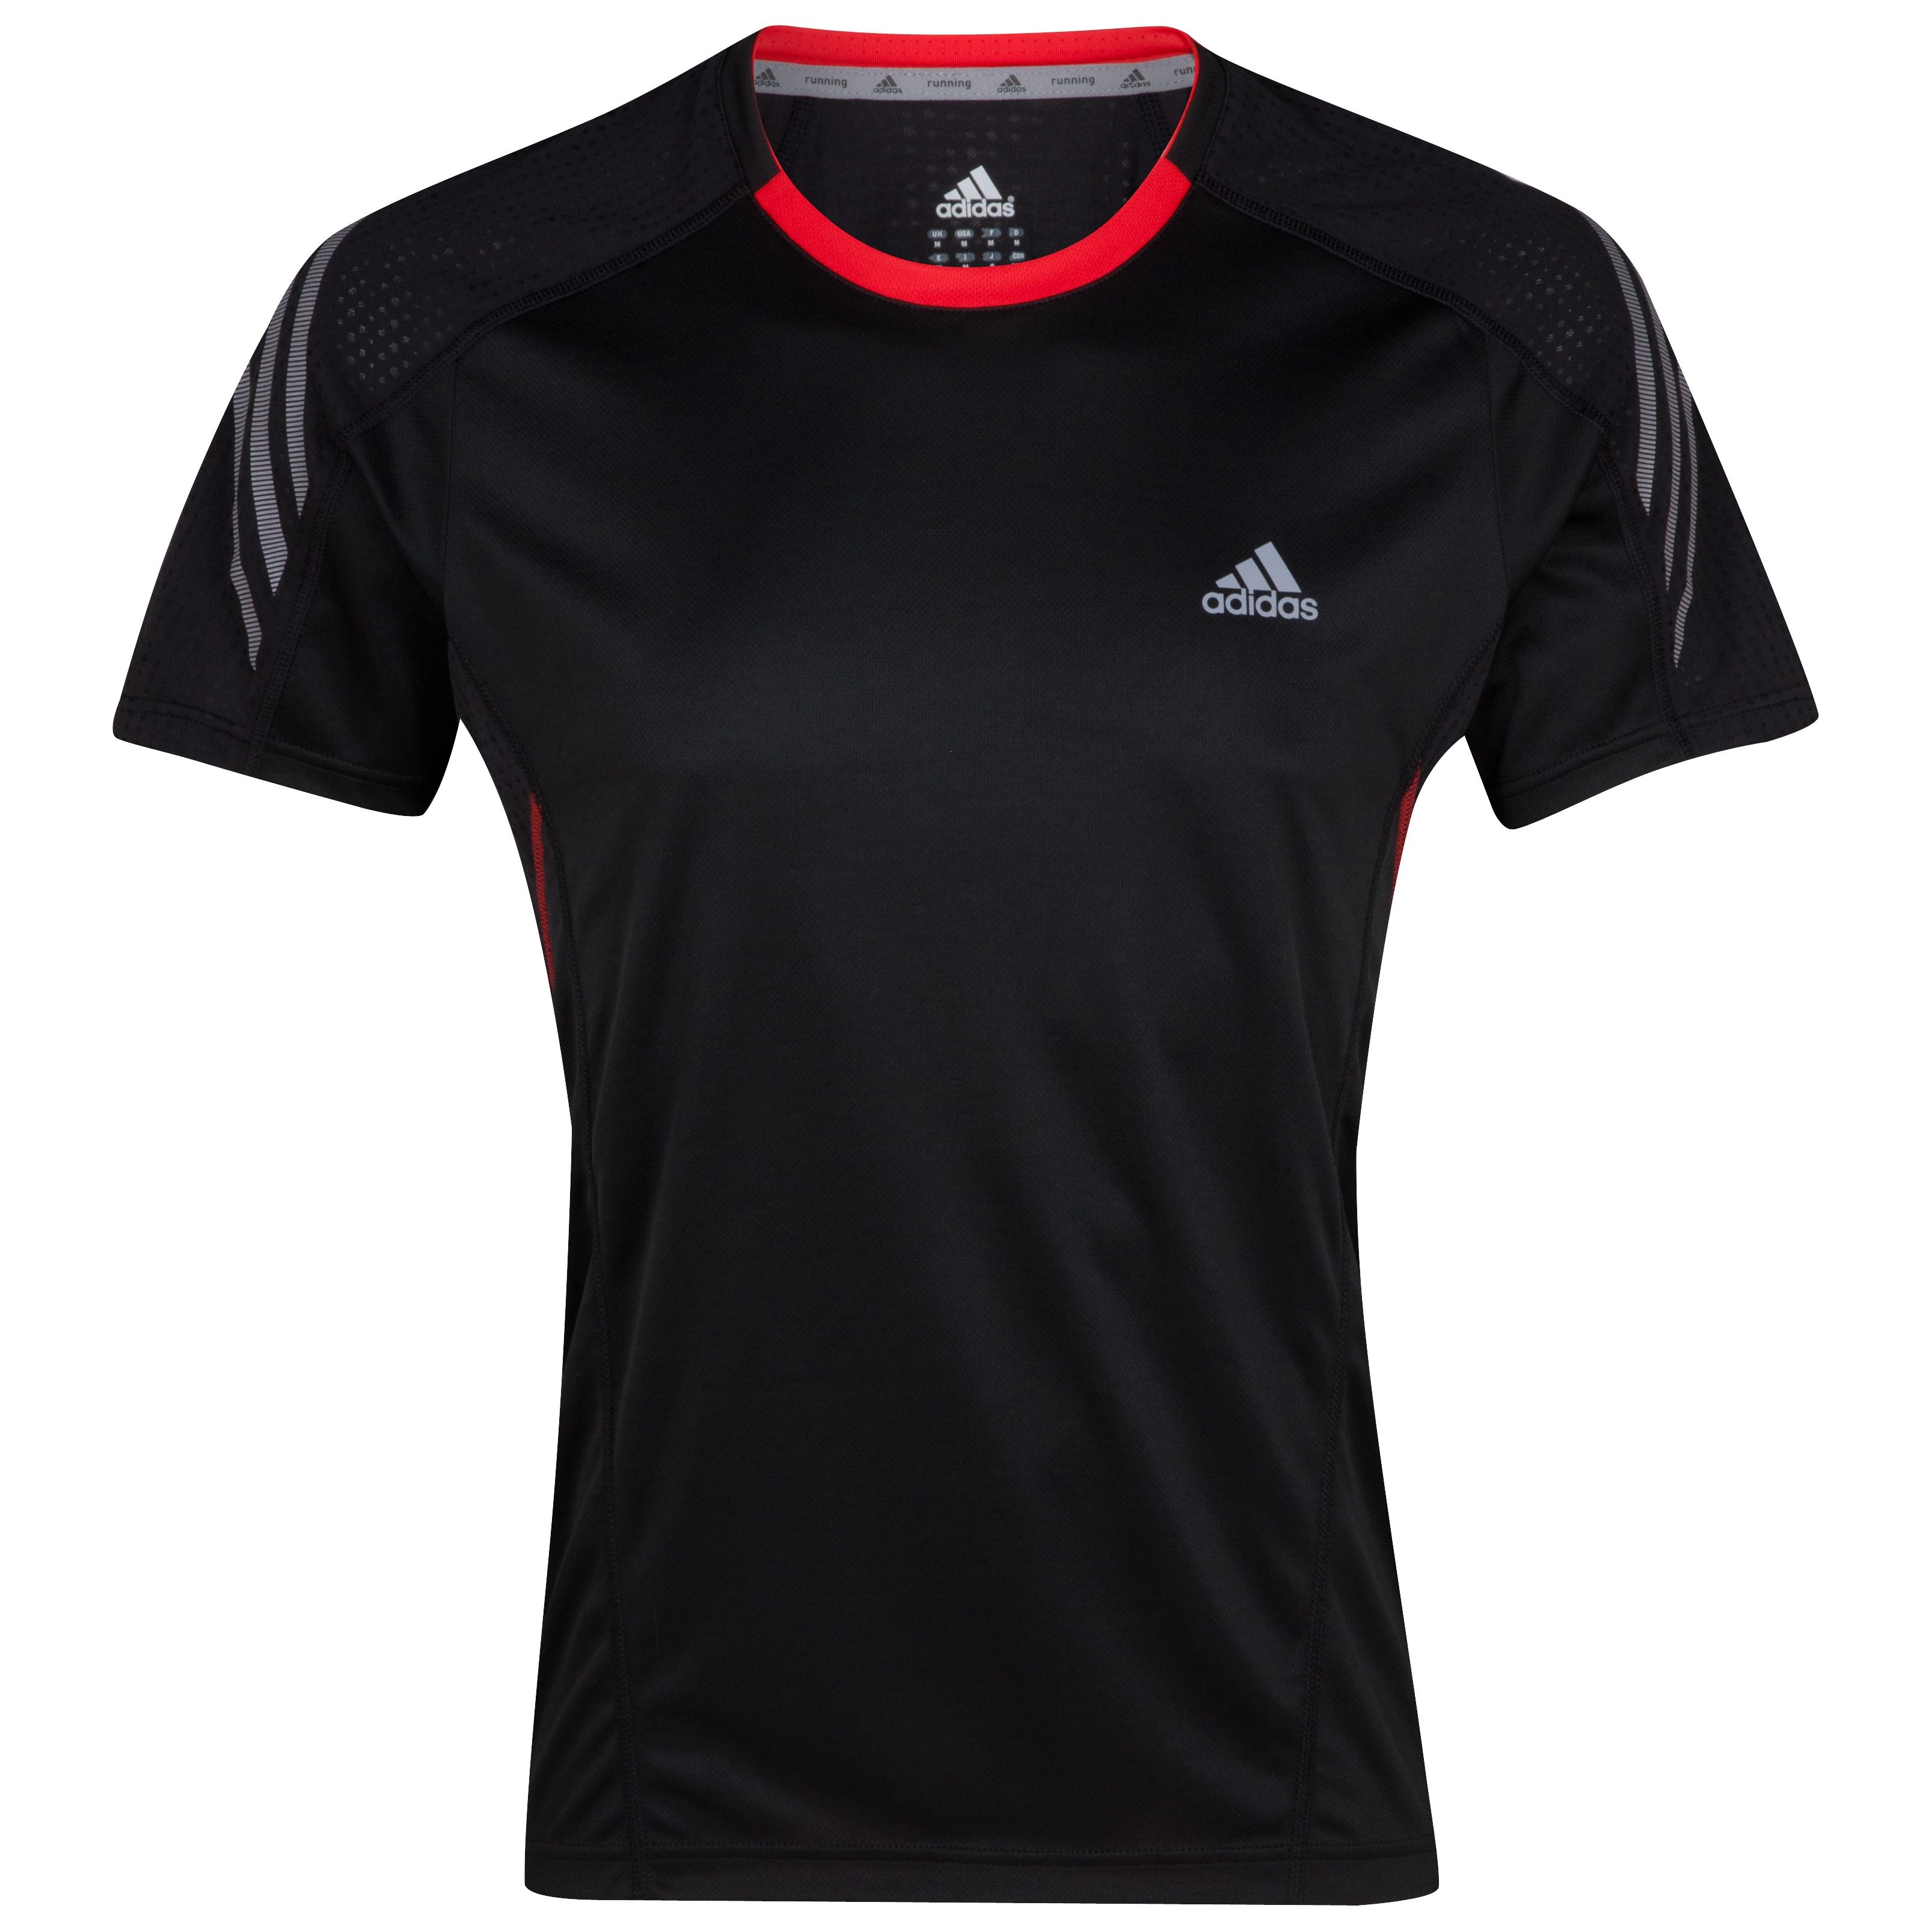 Adidas Supernova T-Shirt - Black/Tech Grey